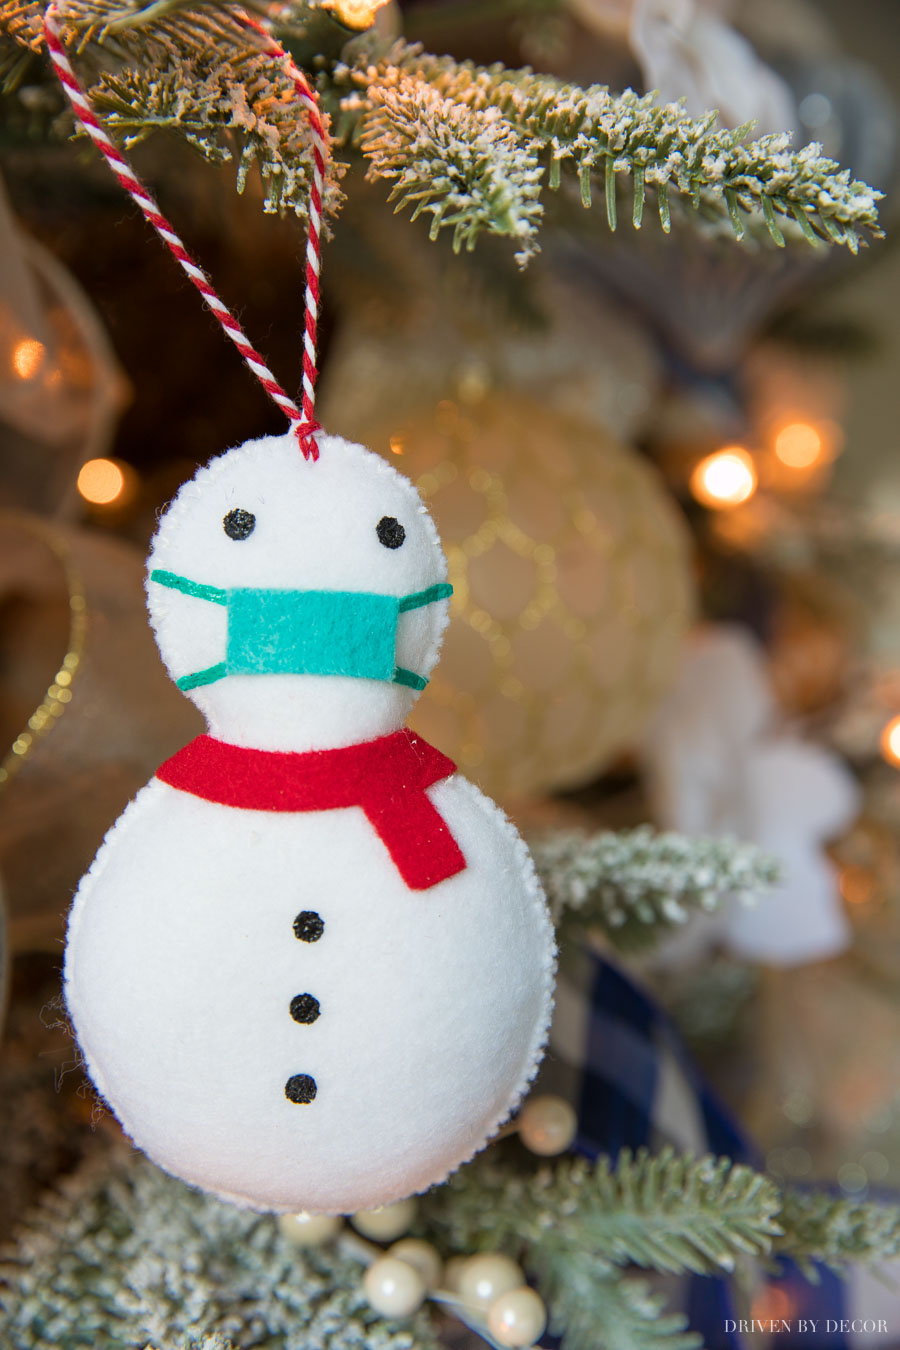 The cutest covid snowman Christmas ornament - perfect for 2020!